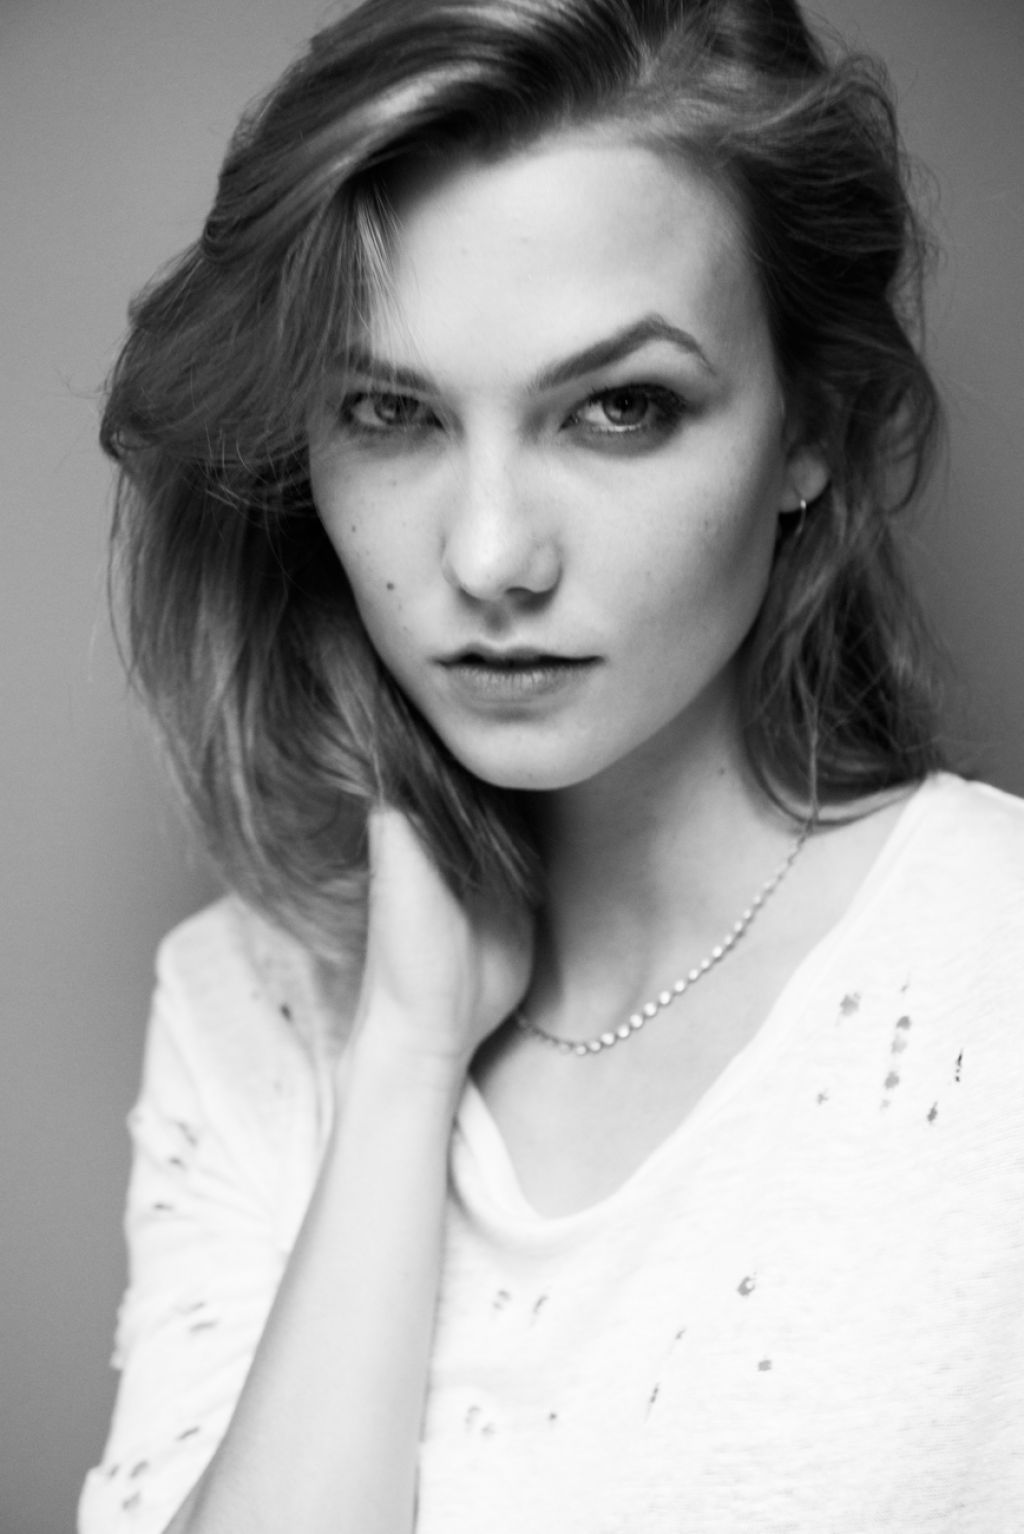 karlie-kloss-photoshoot-for-the-coveteur-2014-_3